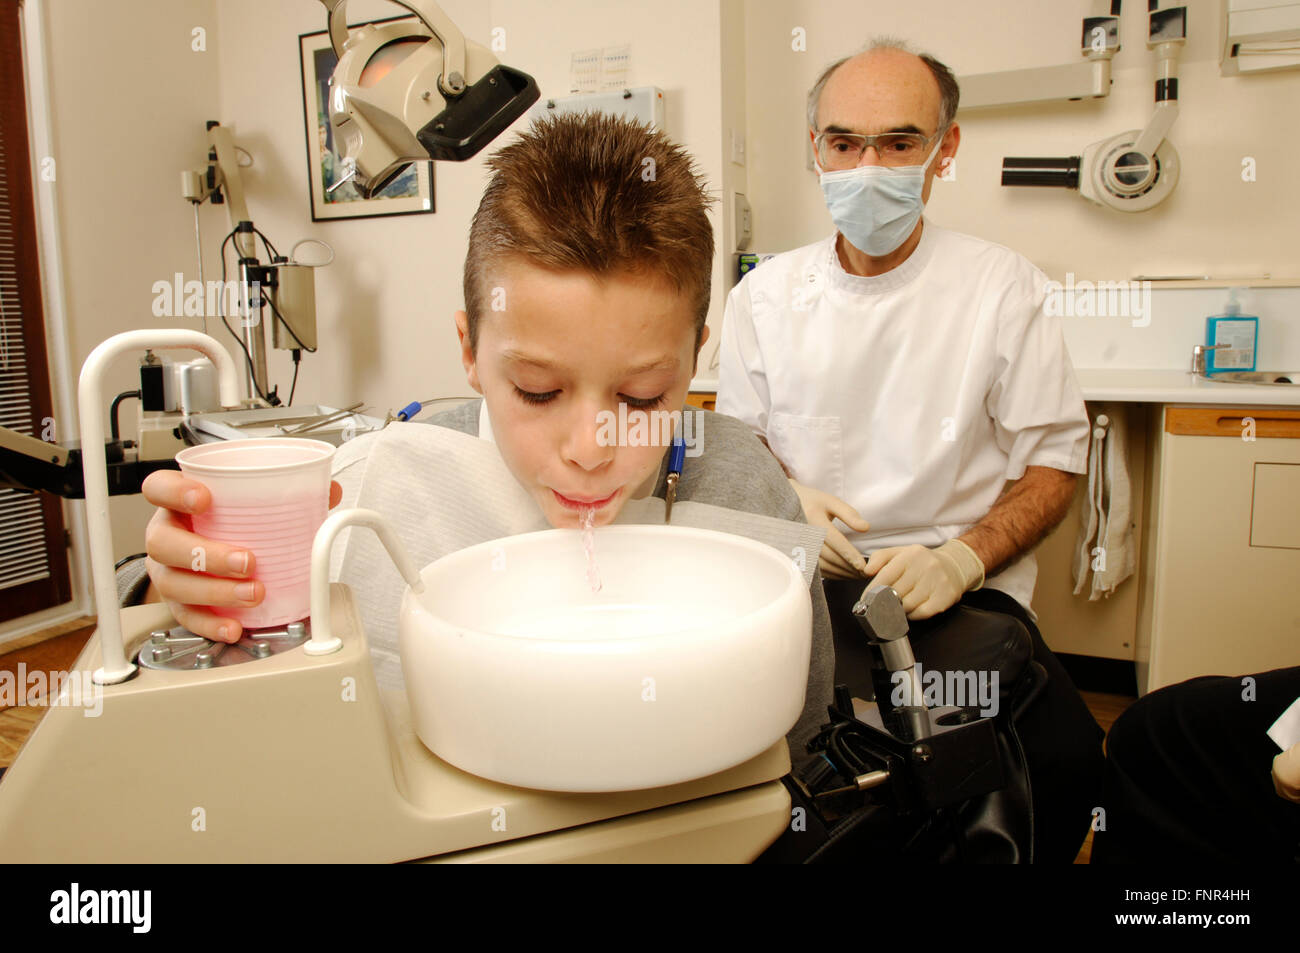 A young boy rinsing his mouth with anti-microbial solution watched by his dentist. - Stock Image